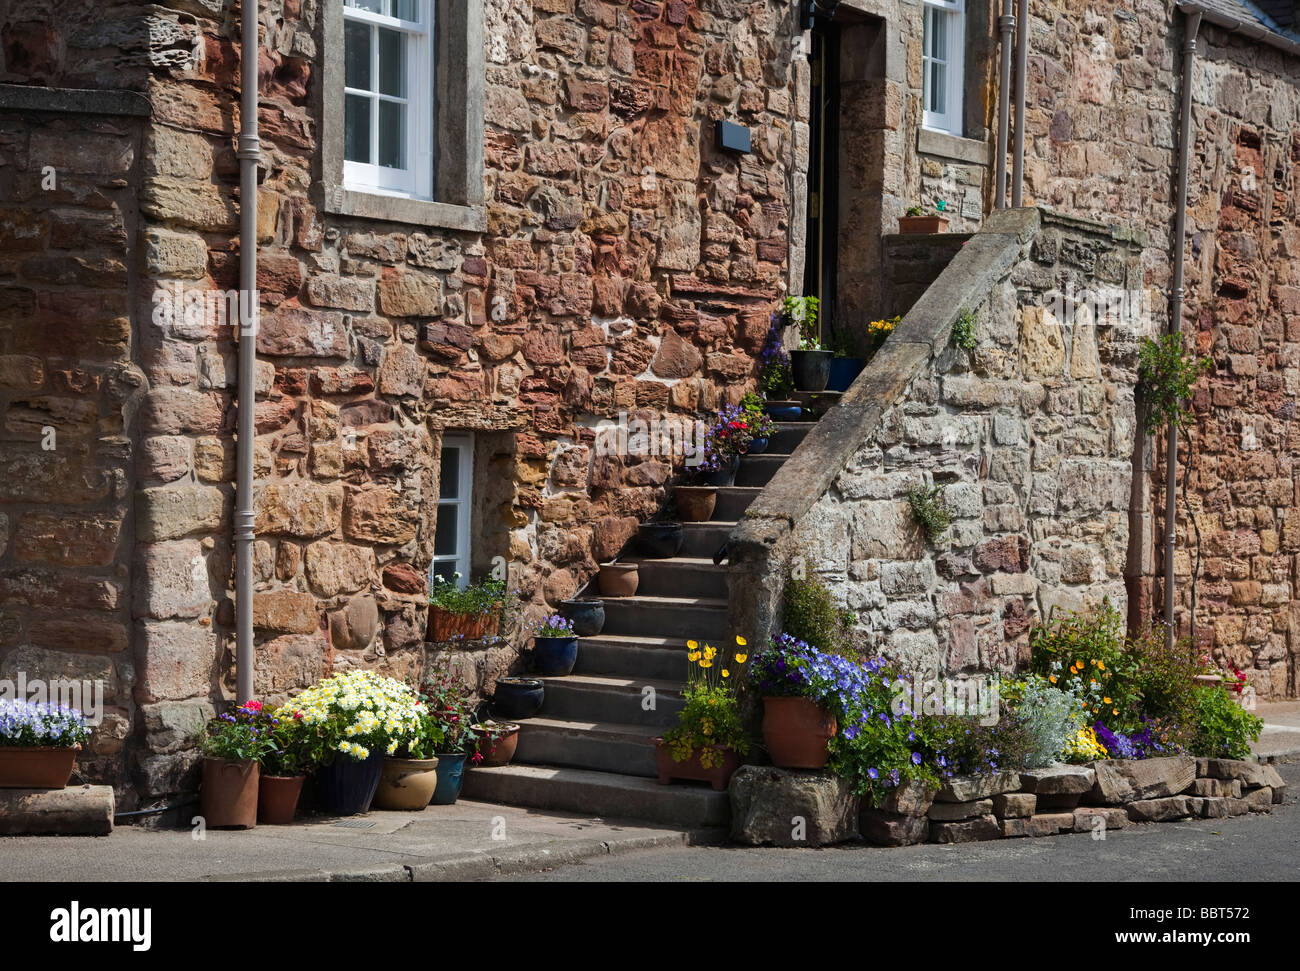 Traditional stone cottage with access stairway decorated with potted plants Crail Fife Scotland - Stock Image